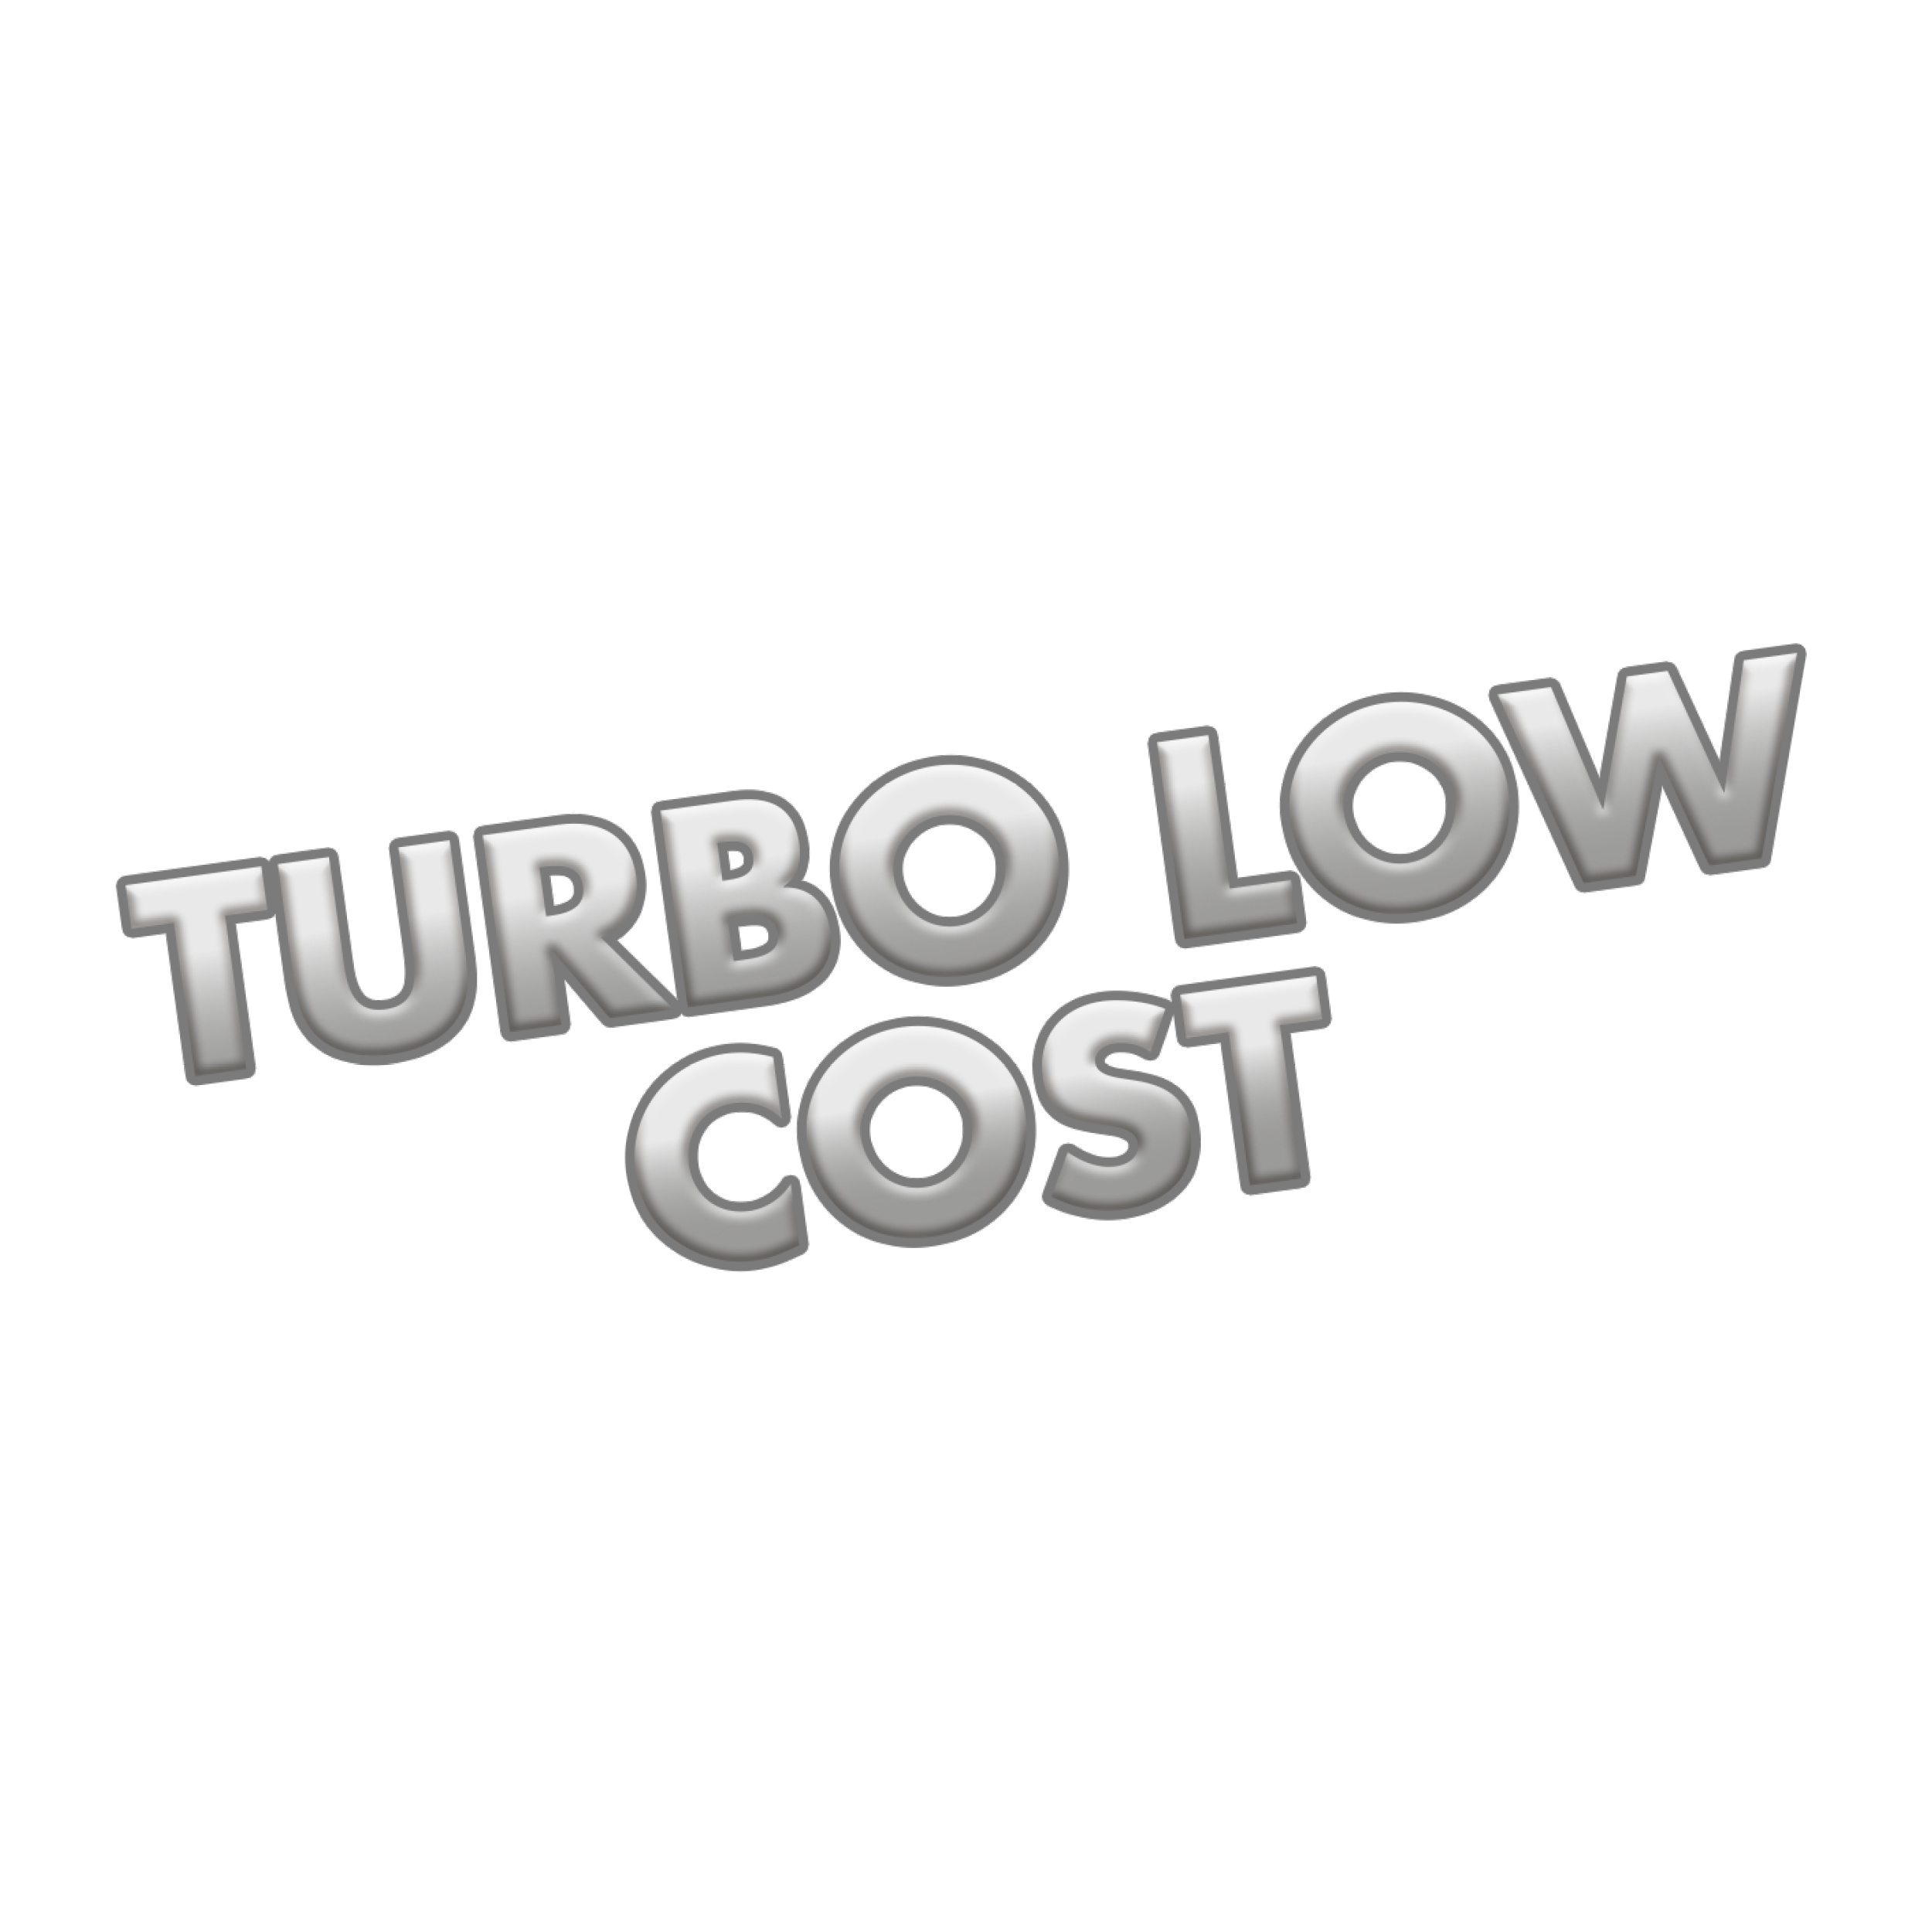 TURBO LOW COST TOURNAMENT